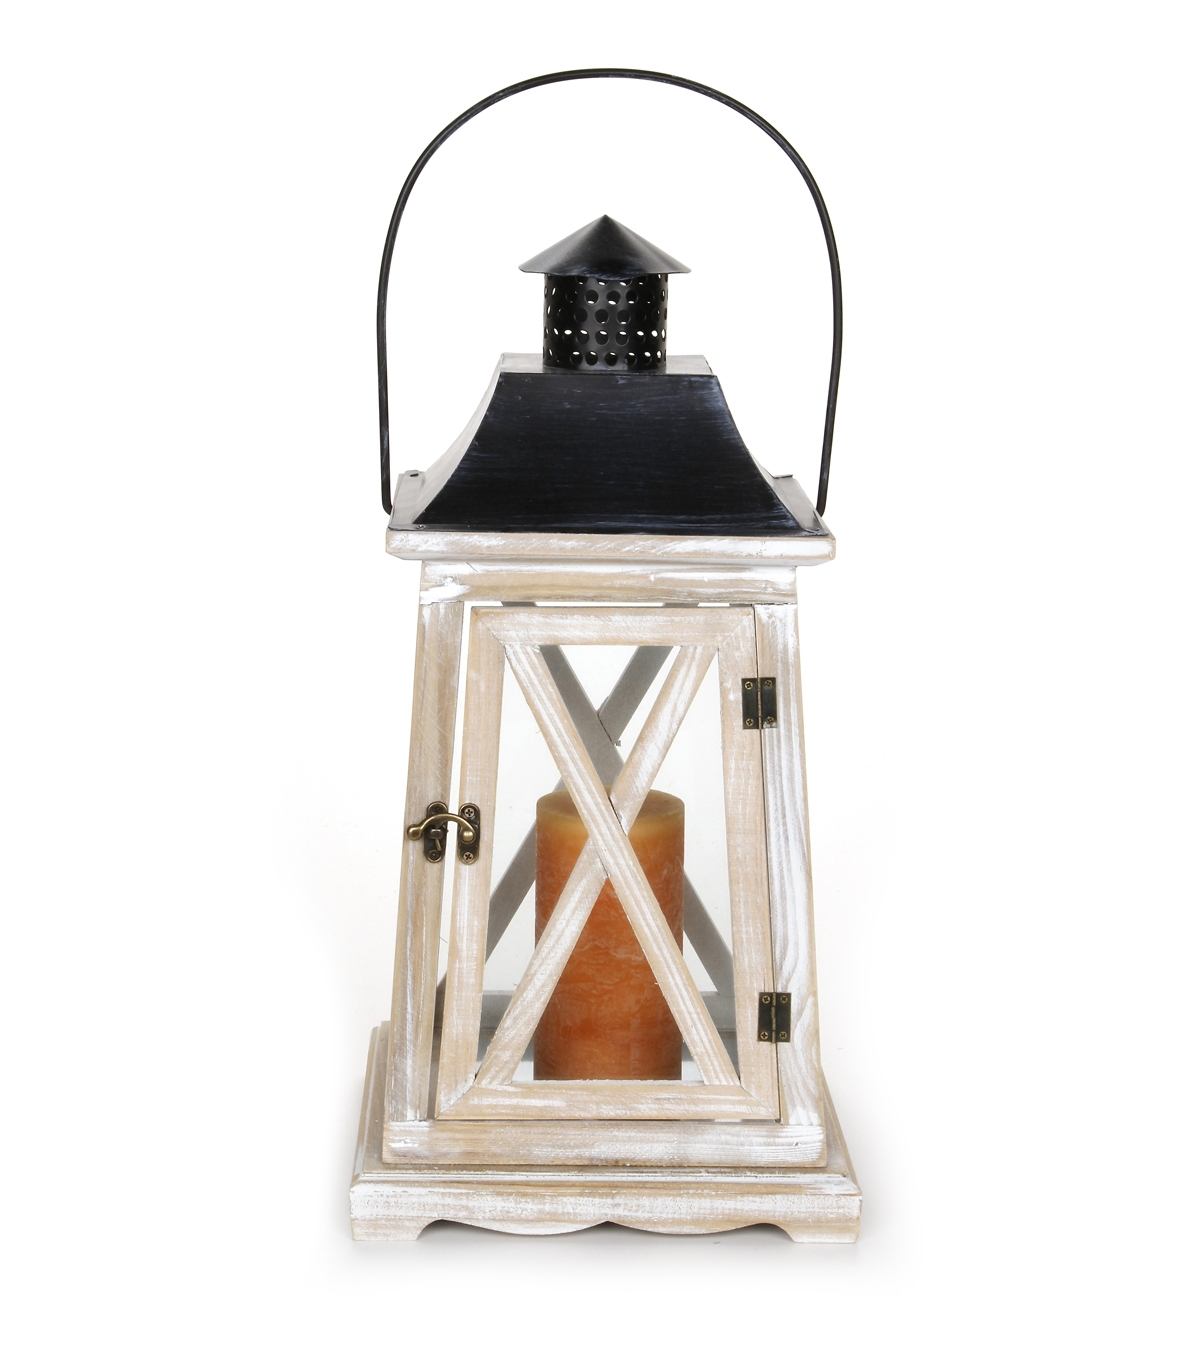 Joanns Outdoor Lanterns Intended For Most Up To Date Wooden Lantern 9 X 9 X 18 Inches (View 2 of 20)